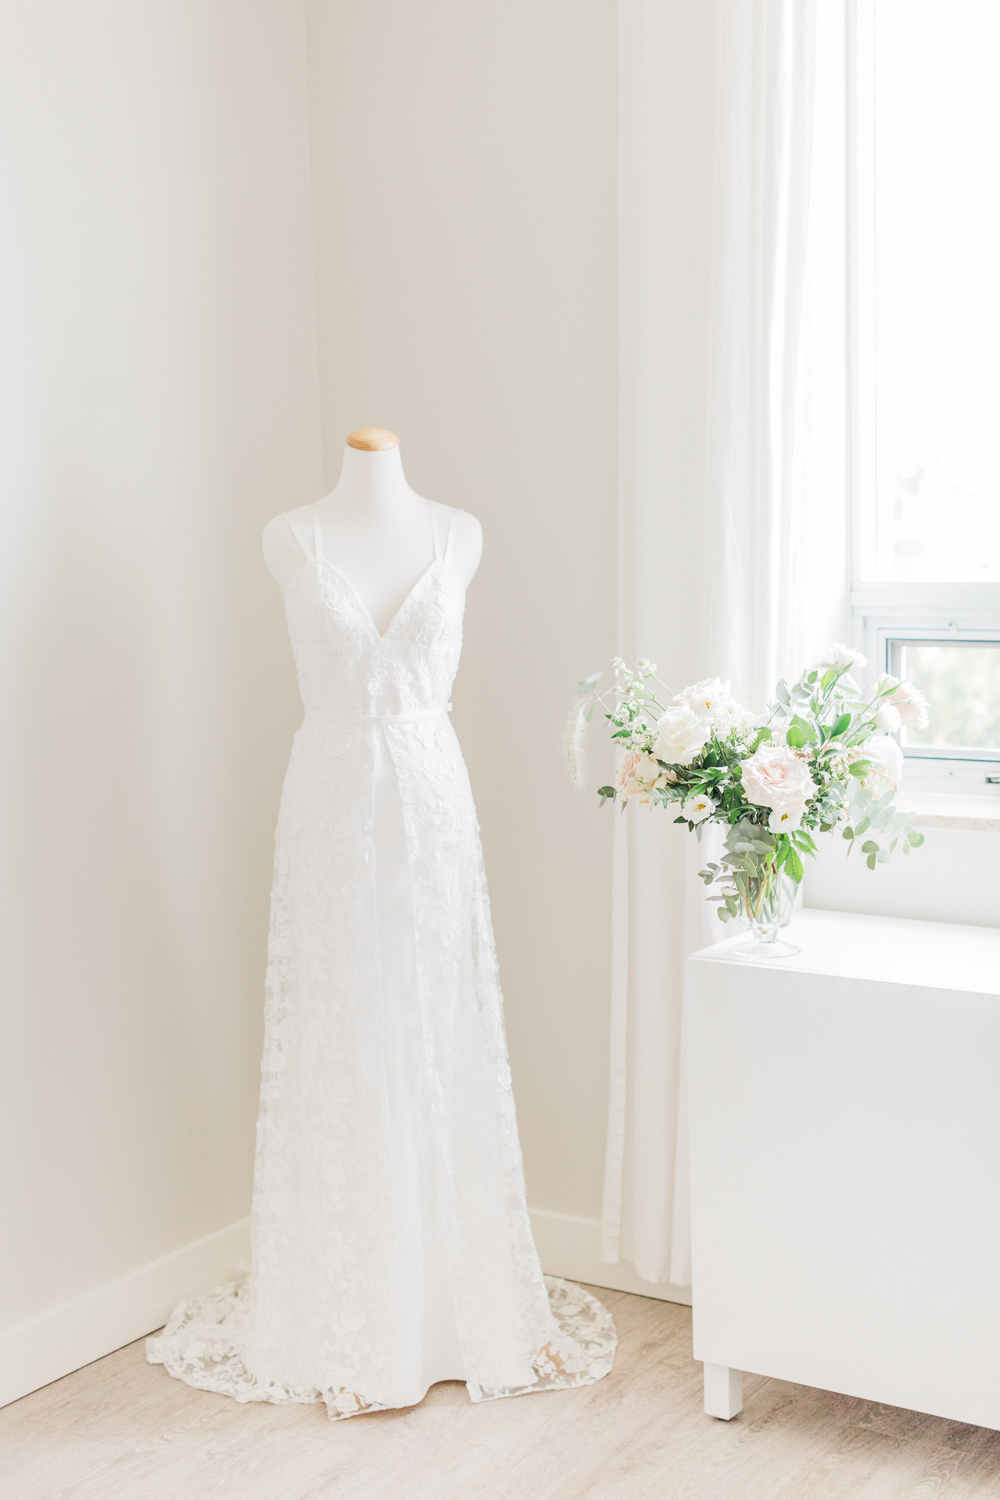 Bride's Rime Arodaky dress from The Mews Bridal in New York City